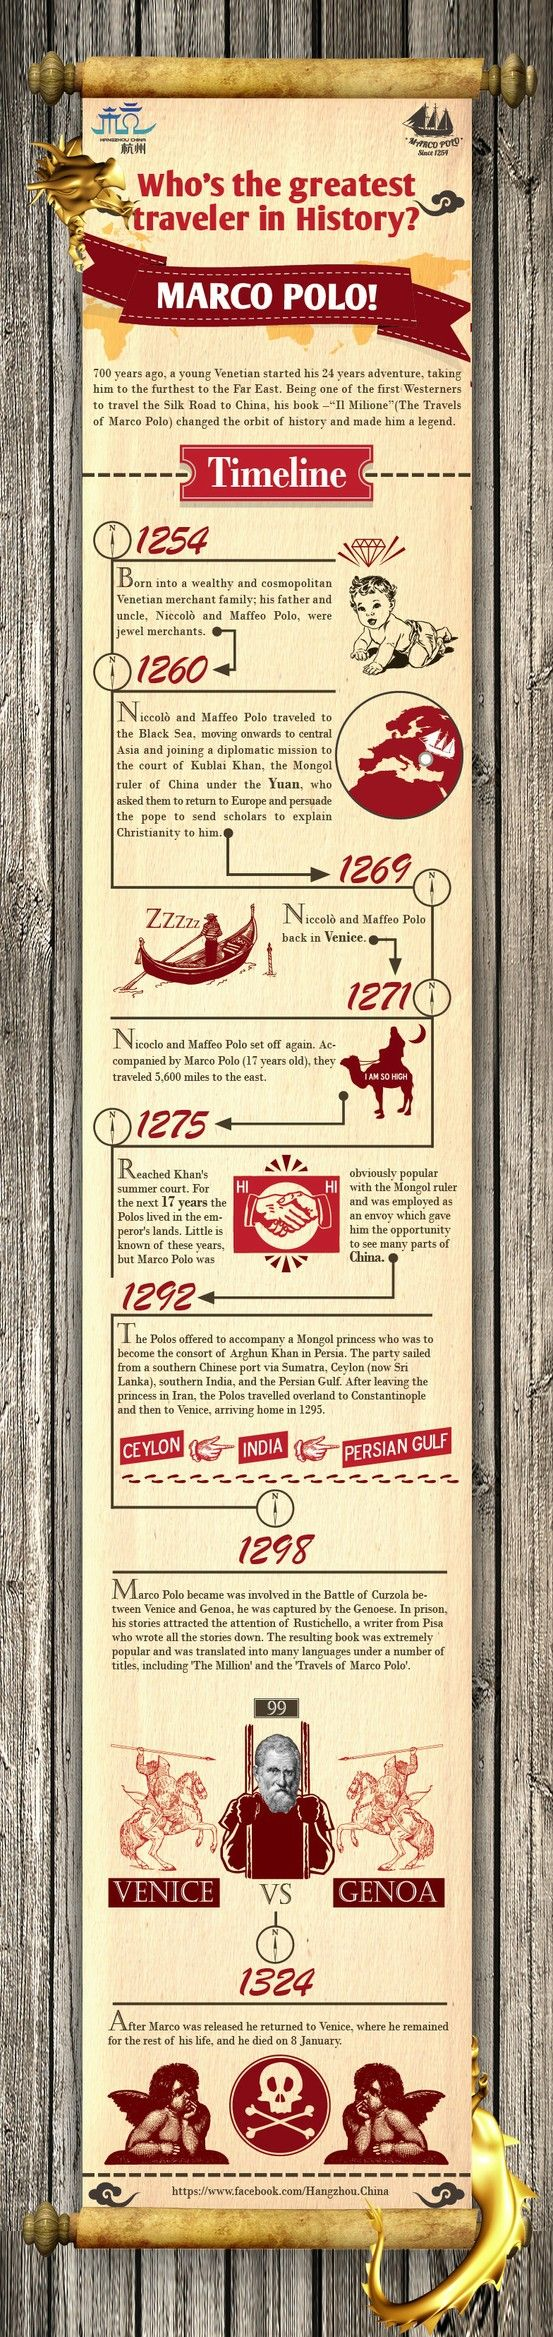 Here's an interesting infographic on Marco Polo.